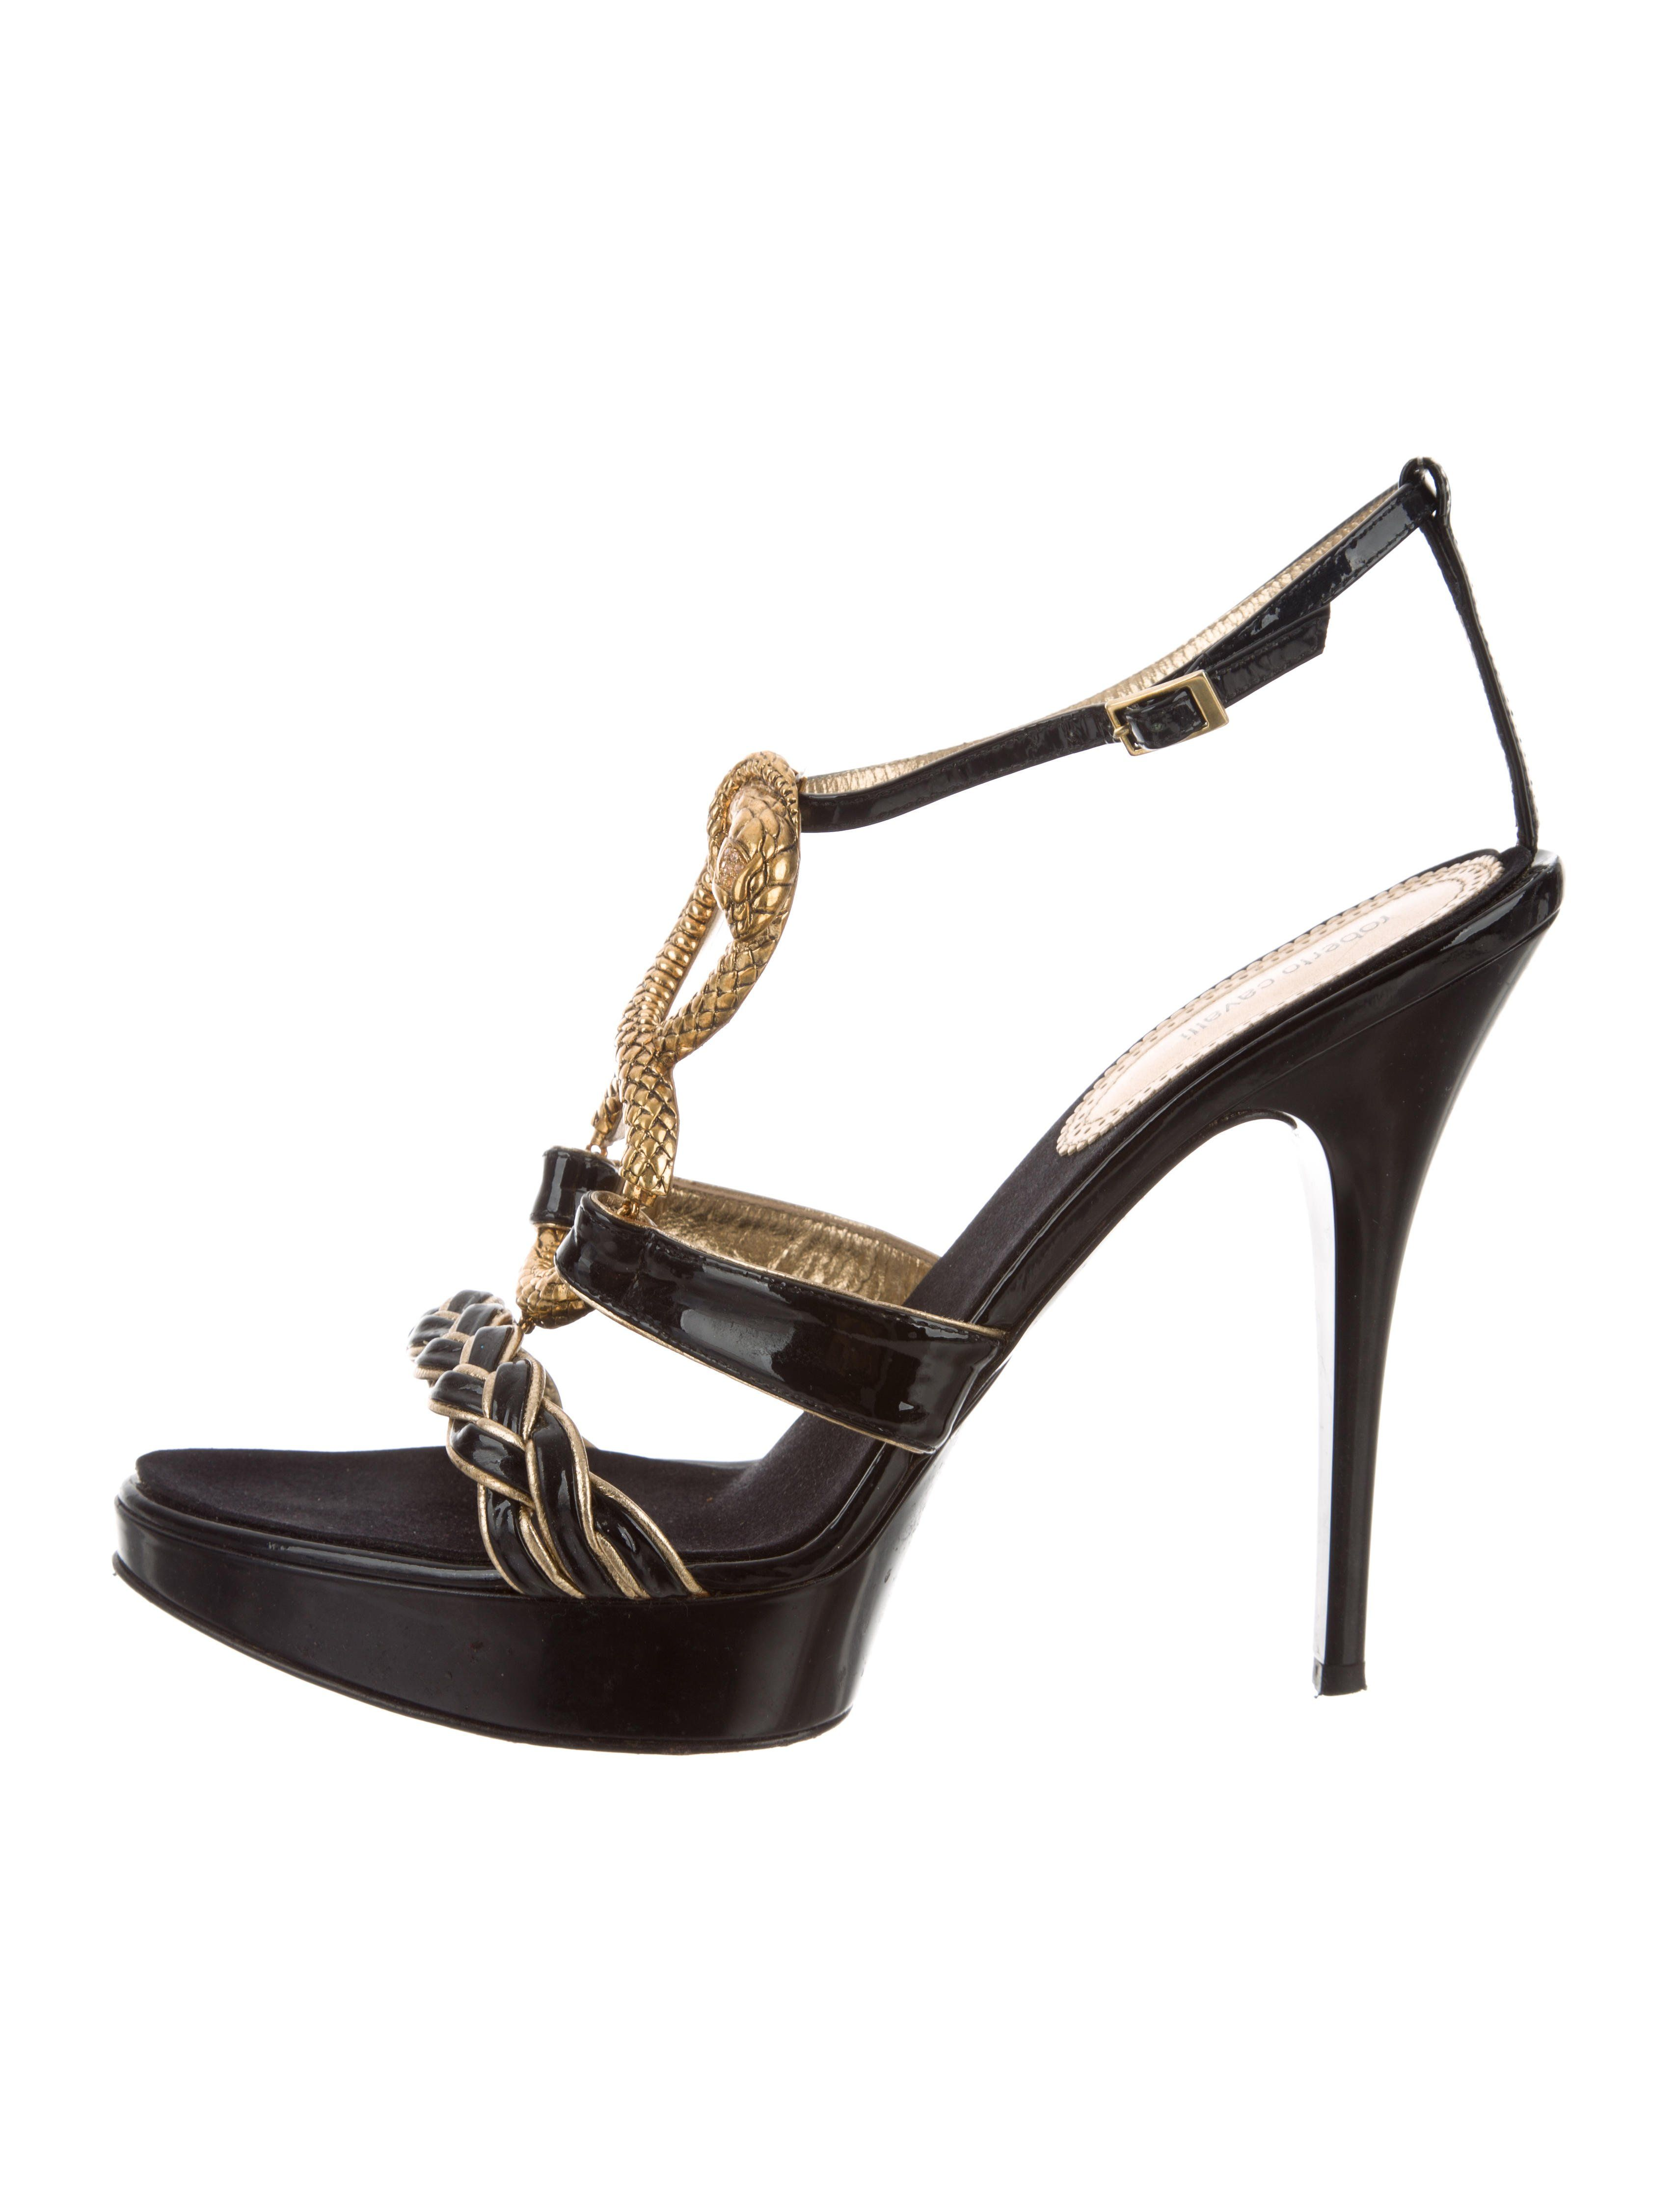 Patent Leather Platform Sandals With Images Leather Platform Sandals Platform Sandals Patent Leather